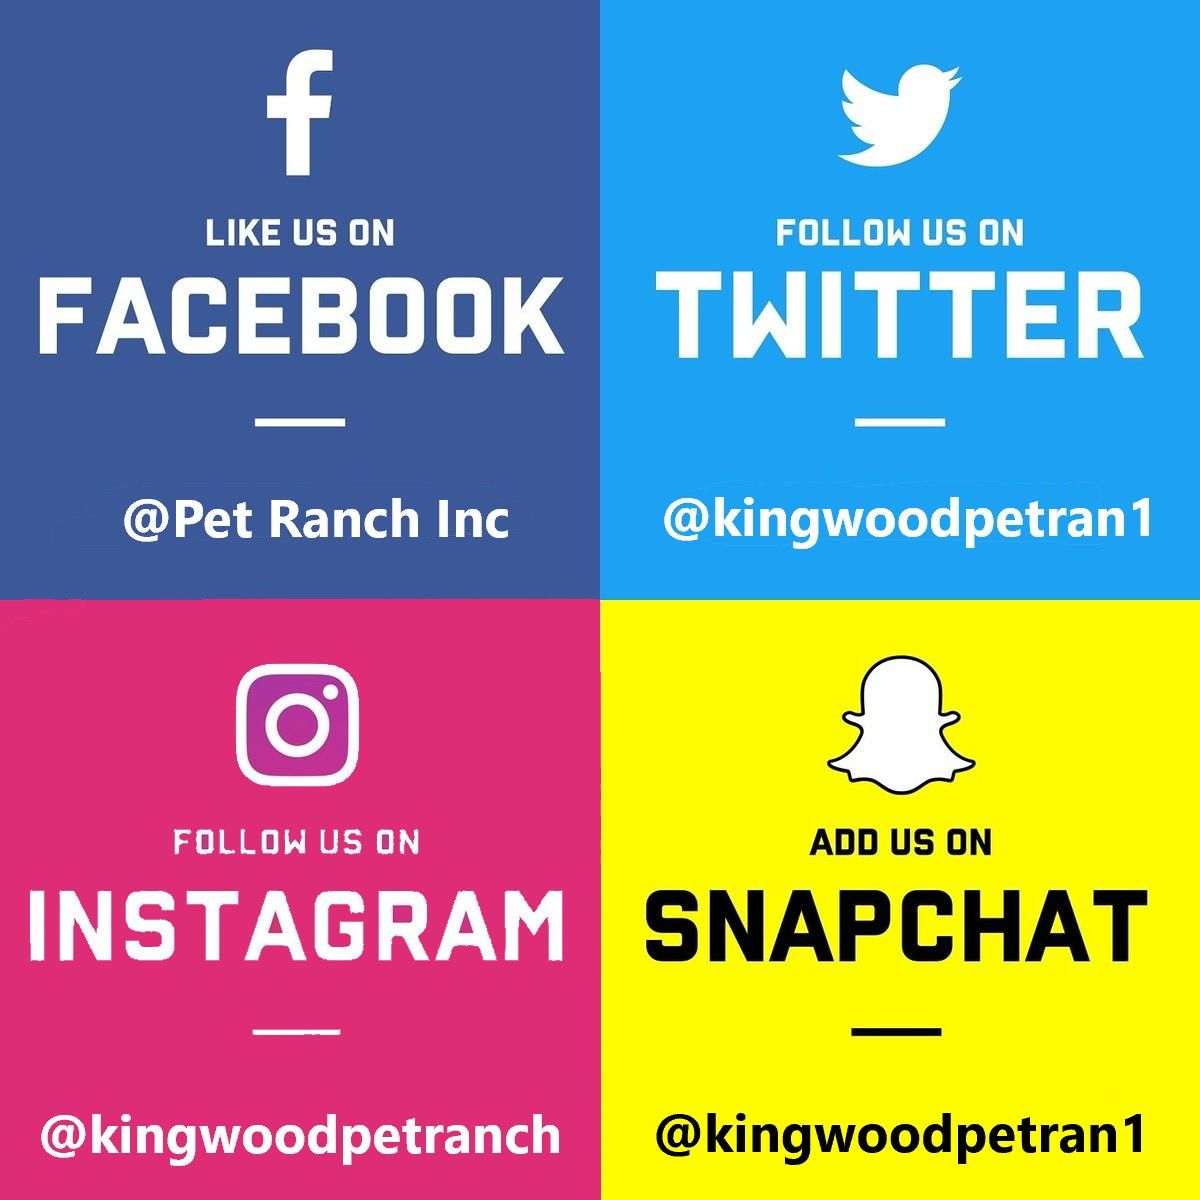 We Are Now On Instagram Twitter And Snapchat Follow Us For All The Latest News Products And Events Facebook Www Instagram And Snapchat Instagram Snapchat